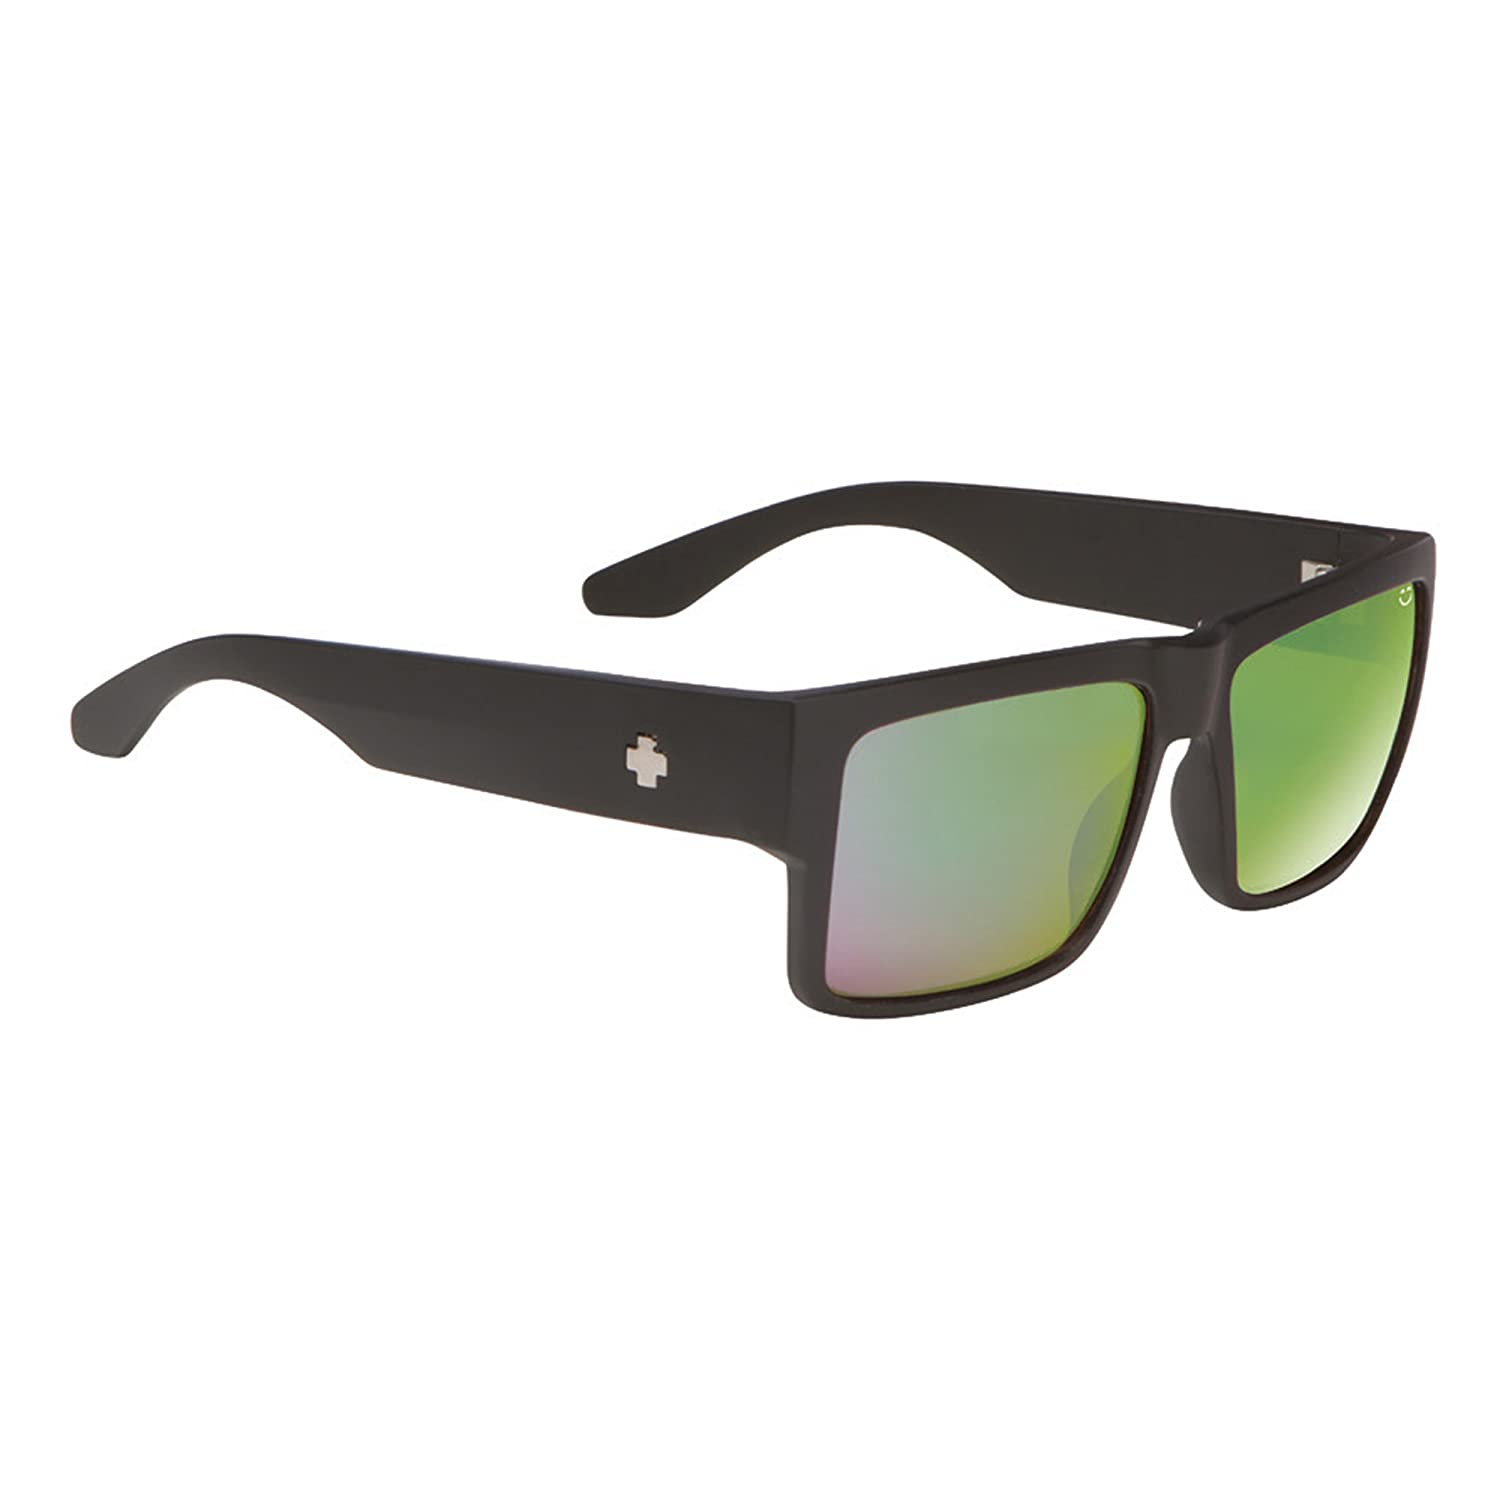 fdb1d741d7 Amazon.com  CYRUS MATTE BLACK - HAPPY BRONZE POLAR w GREEN SPECTRA  Spy   Clothing